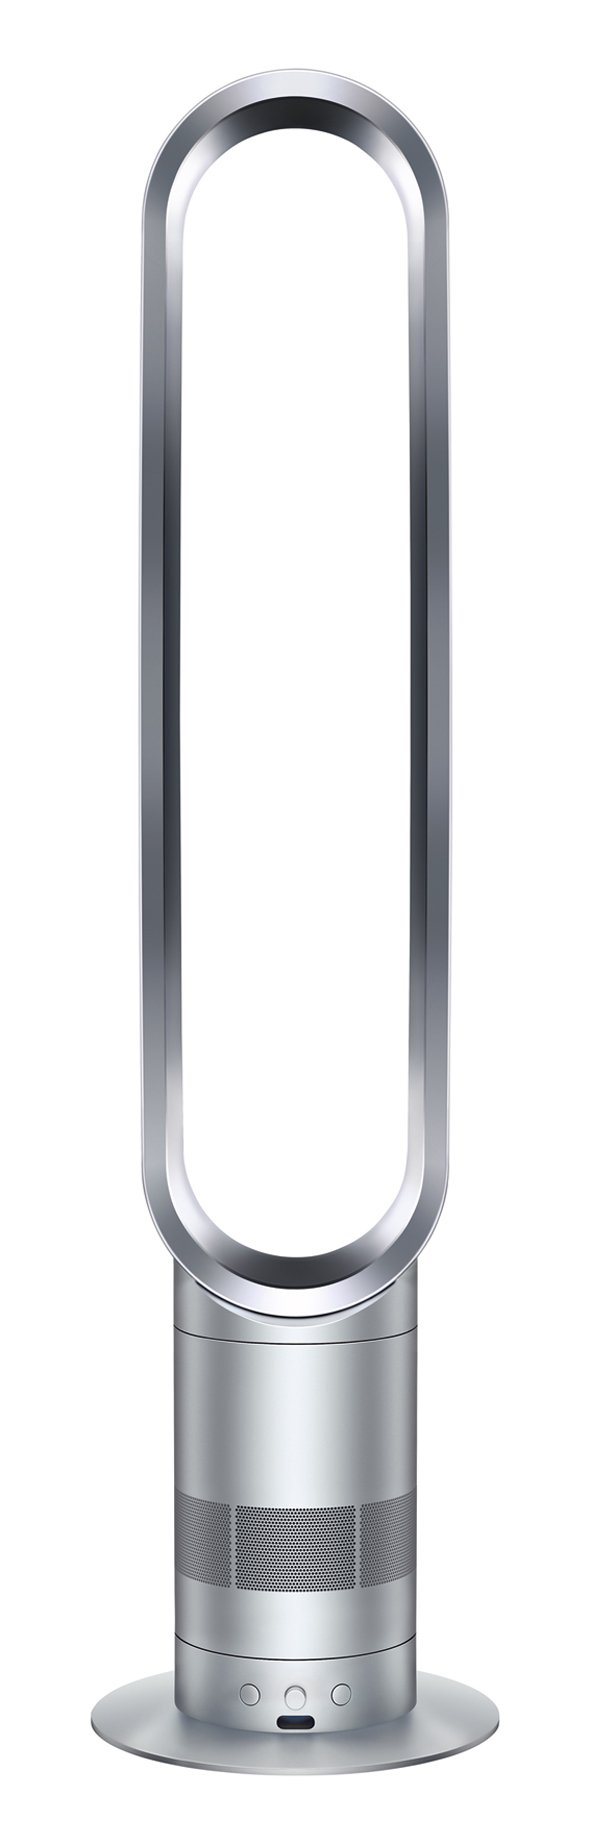 Dyson AM02 tower fan, Silver